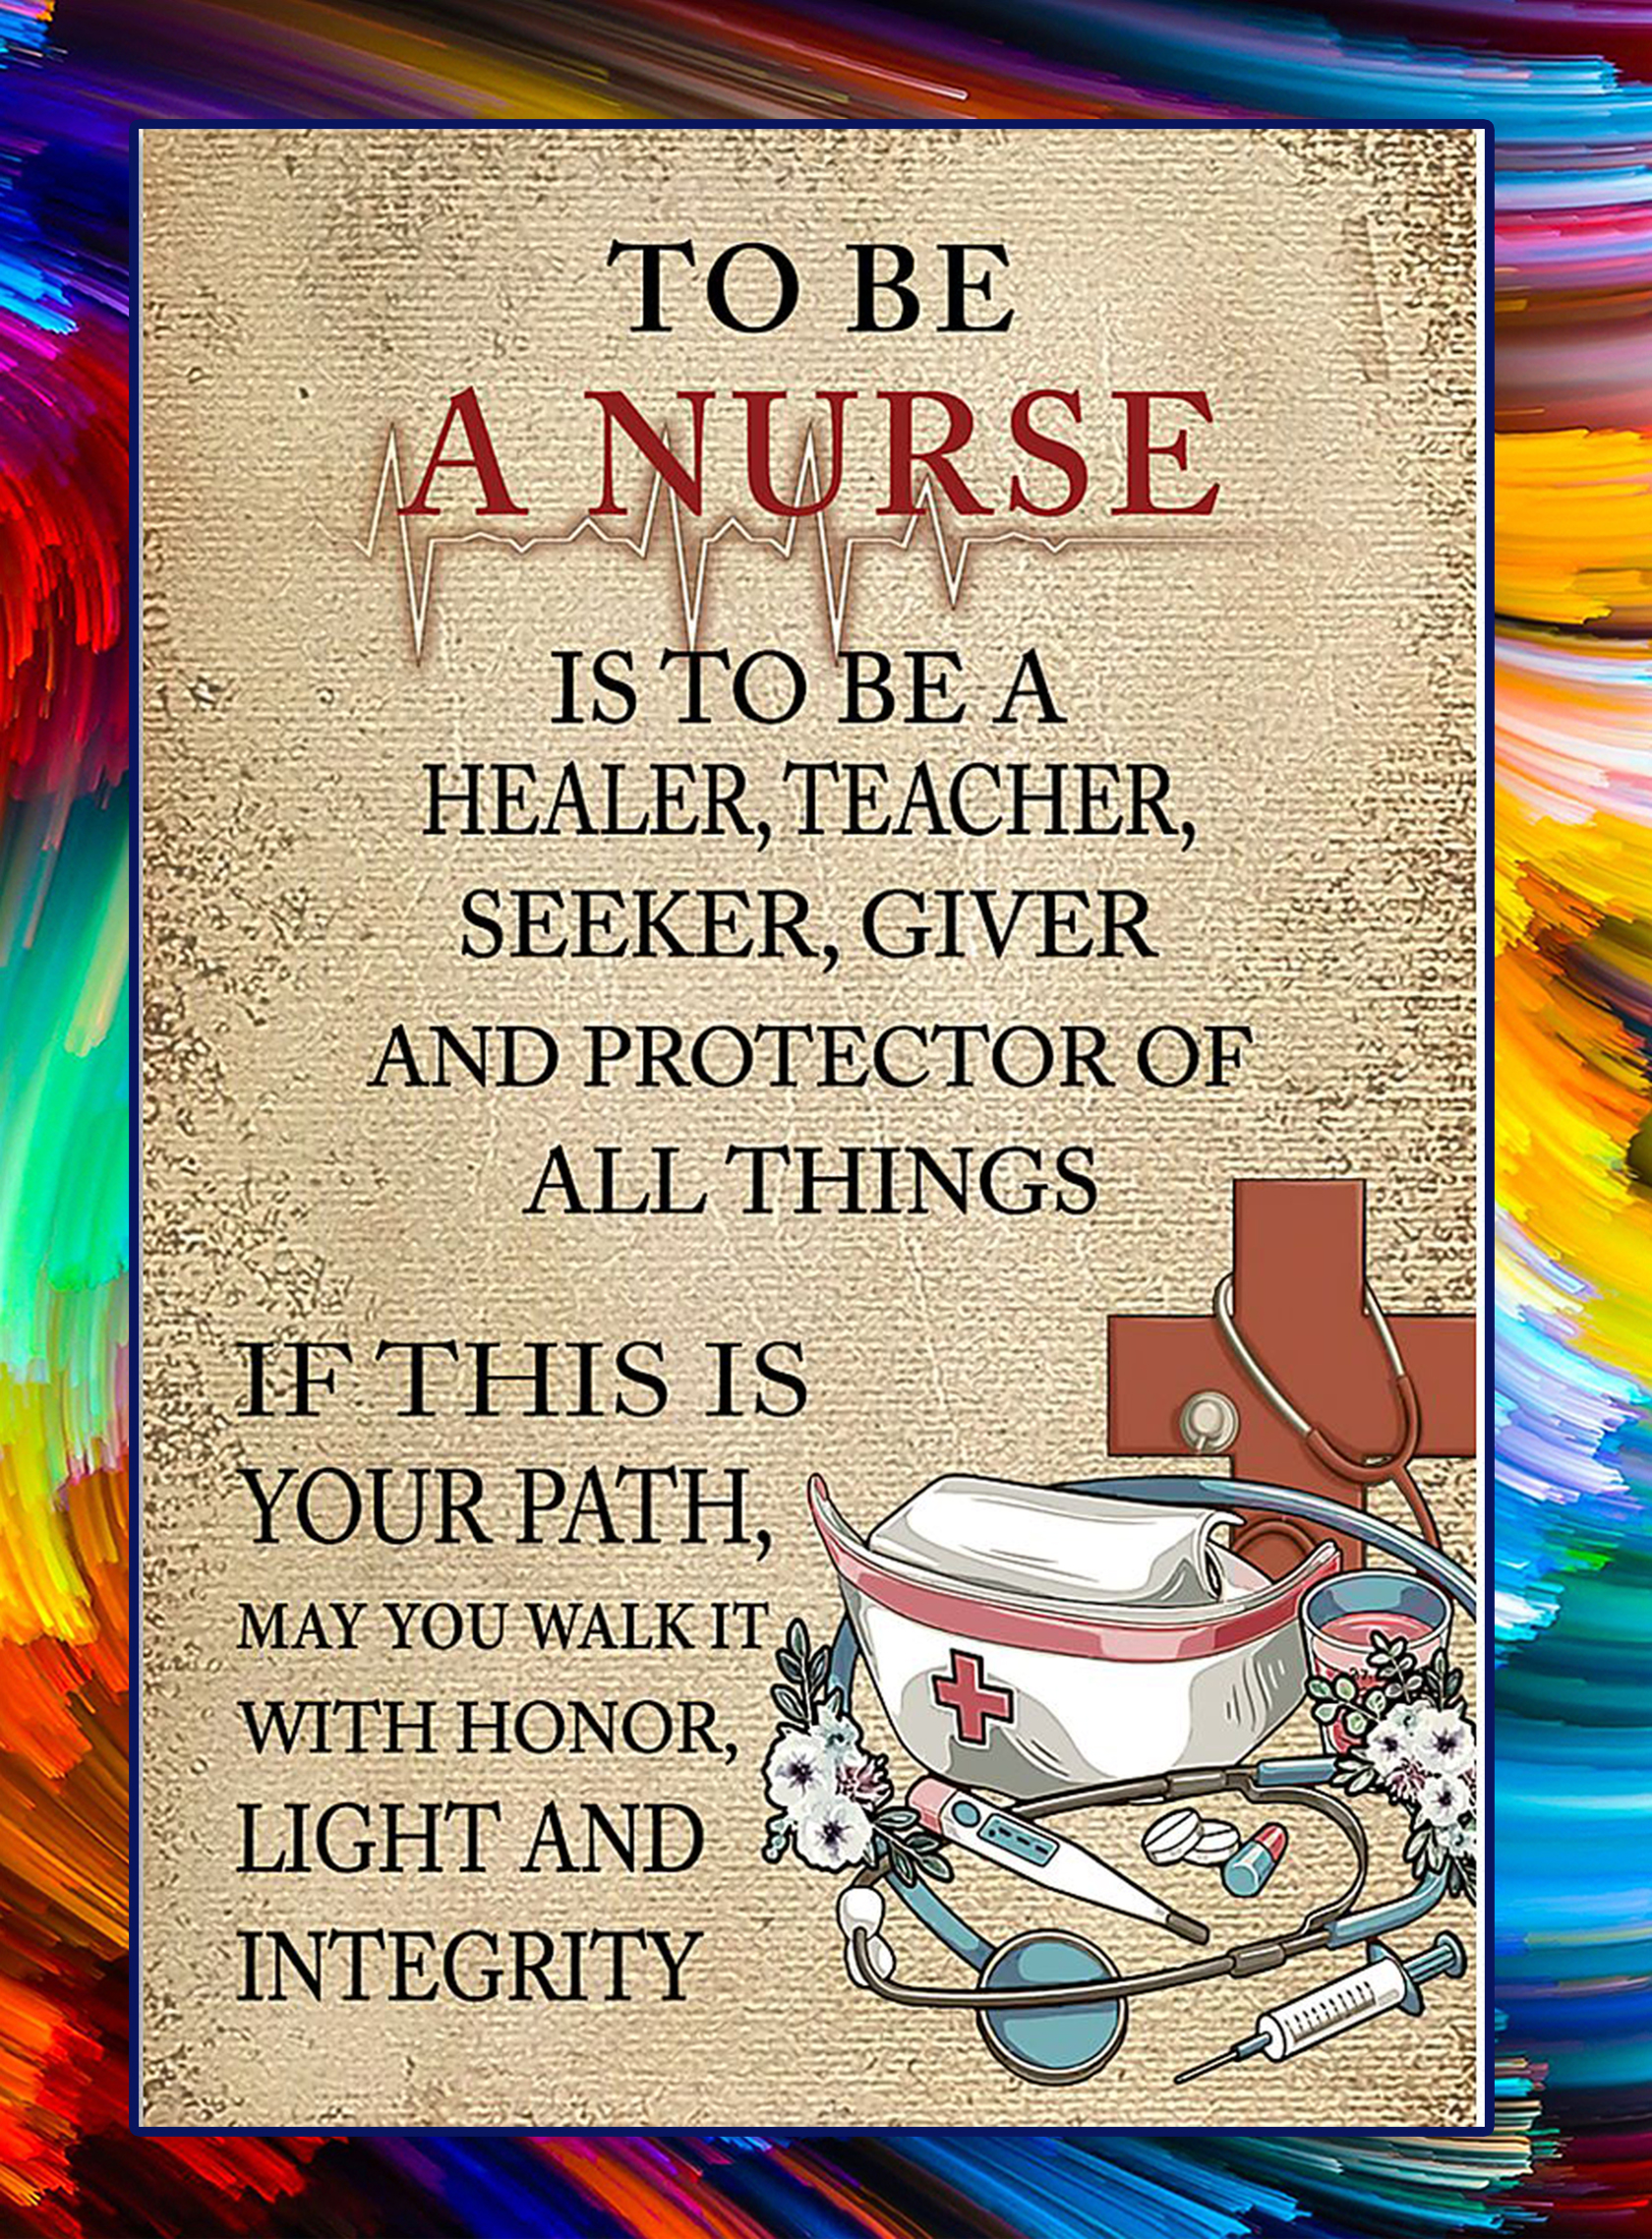 To be a nurse is to be a healer teacher poster - A2